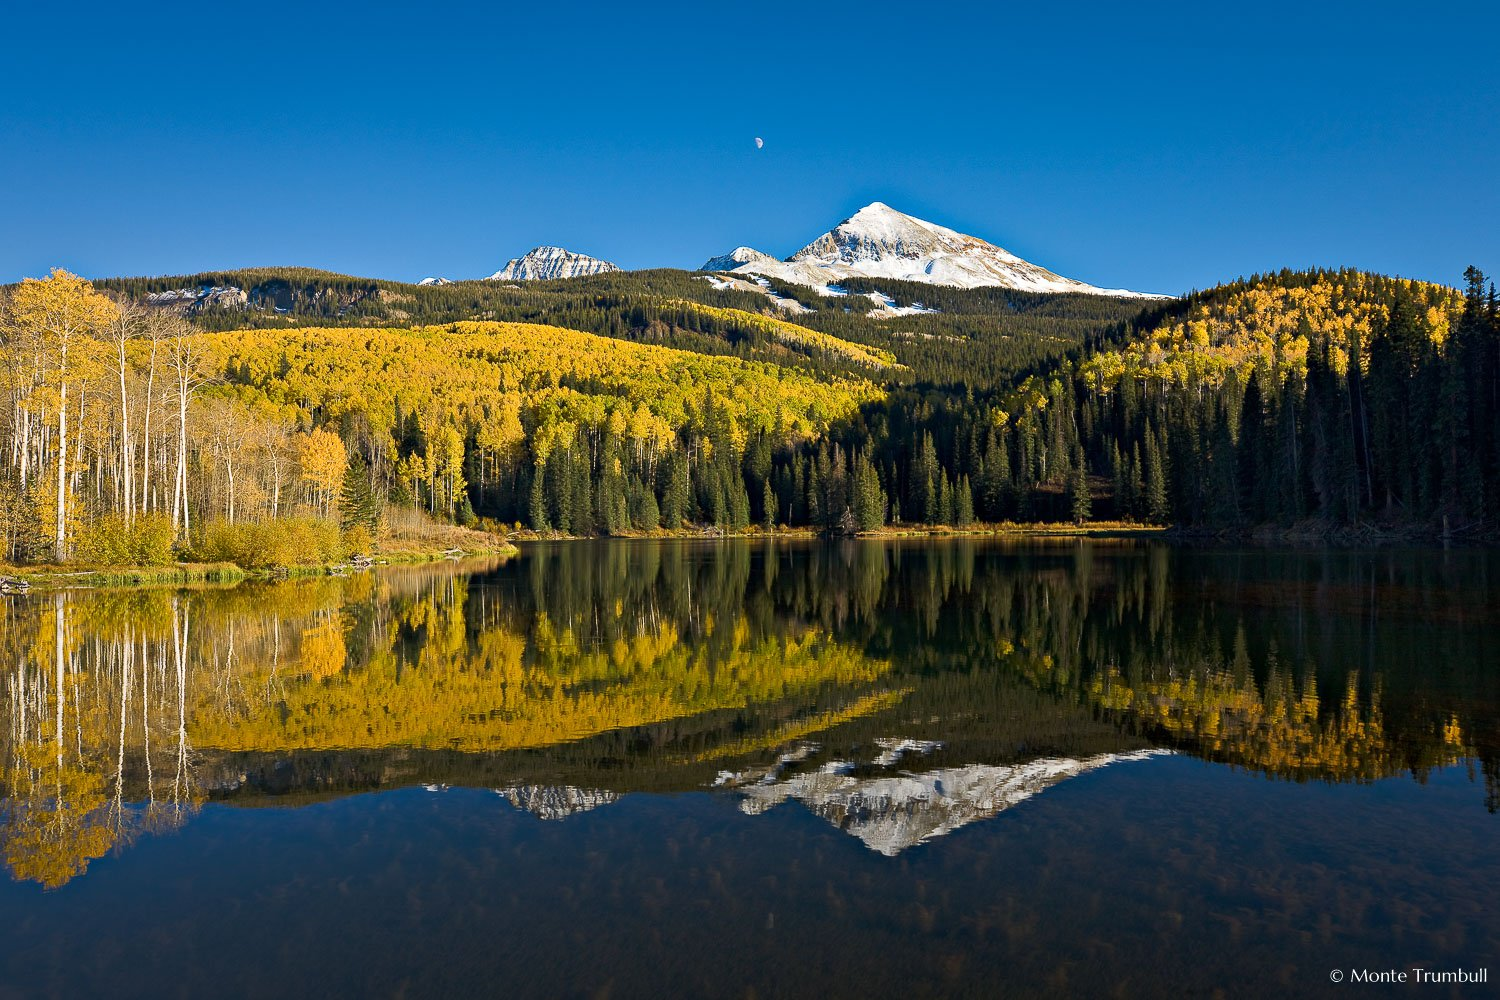 MT-20081008-173842-0153-Edit-Colorado-Woods-Lake-Wilson-Peak-reflection-fall-colors.jpg